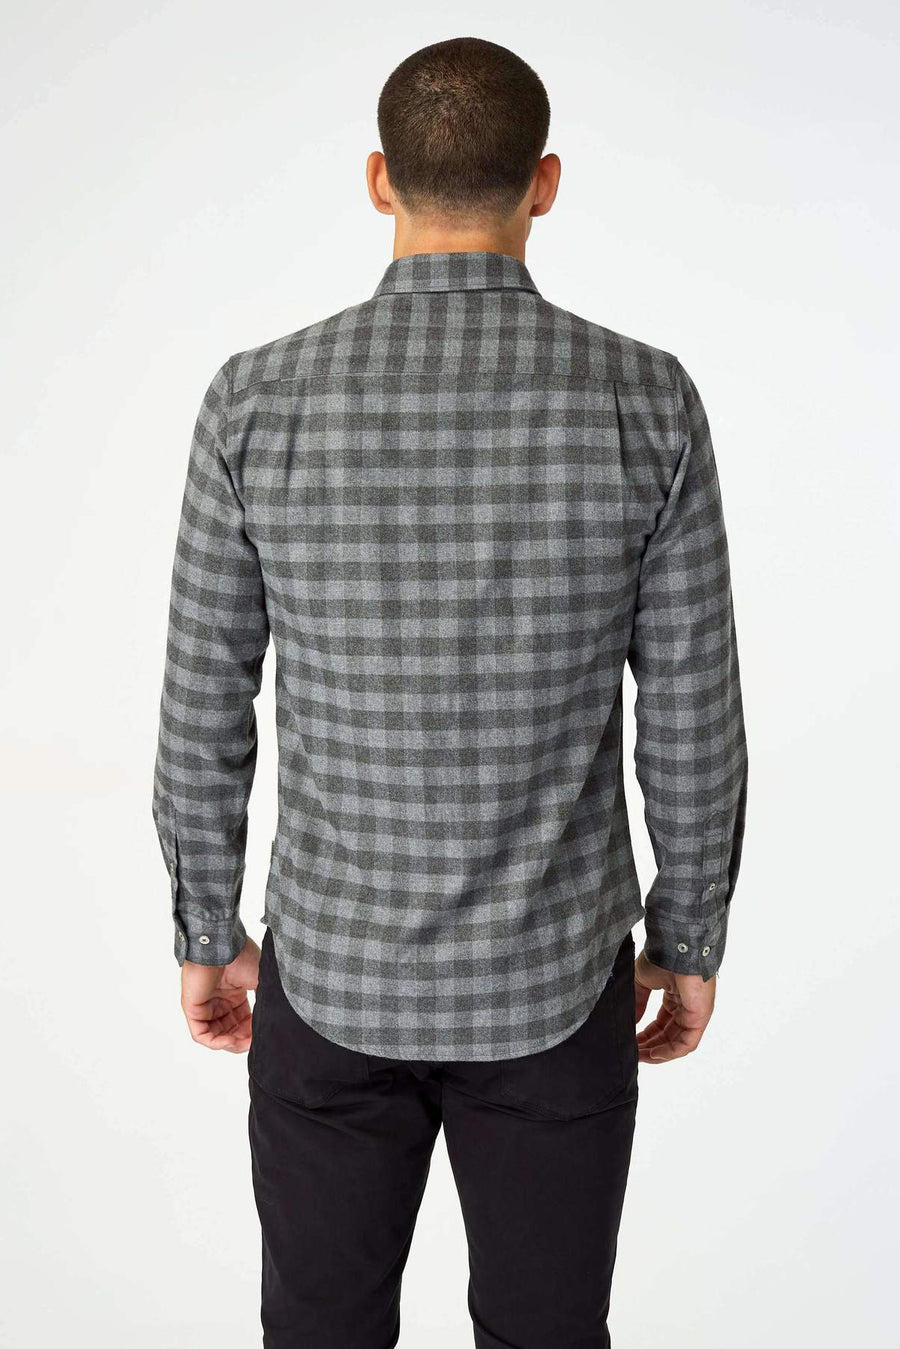 Asher Long Sleeve Flannel Shirt - Grey - Pavilion